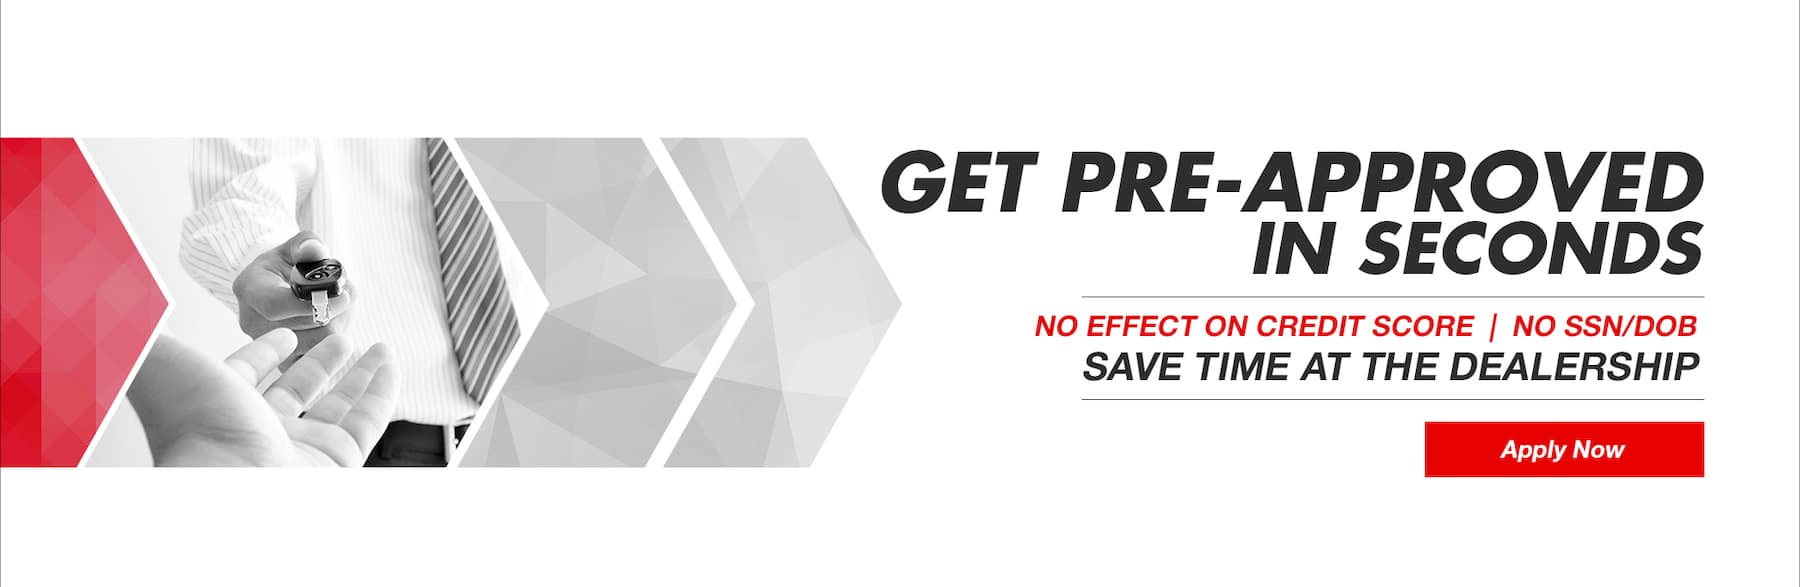 get pre approved homepage banner